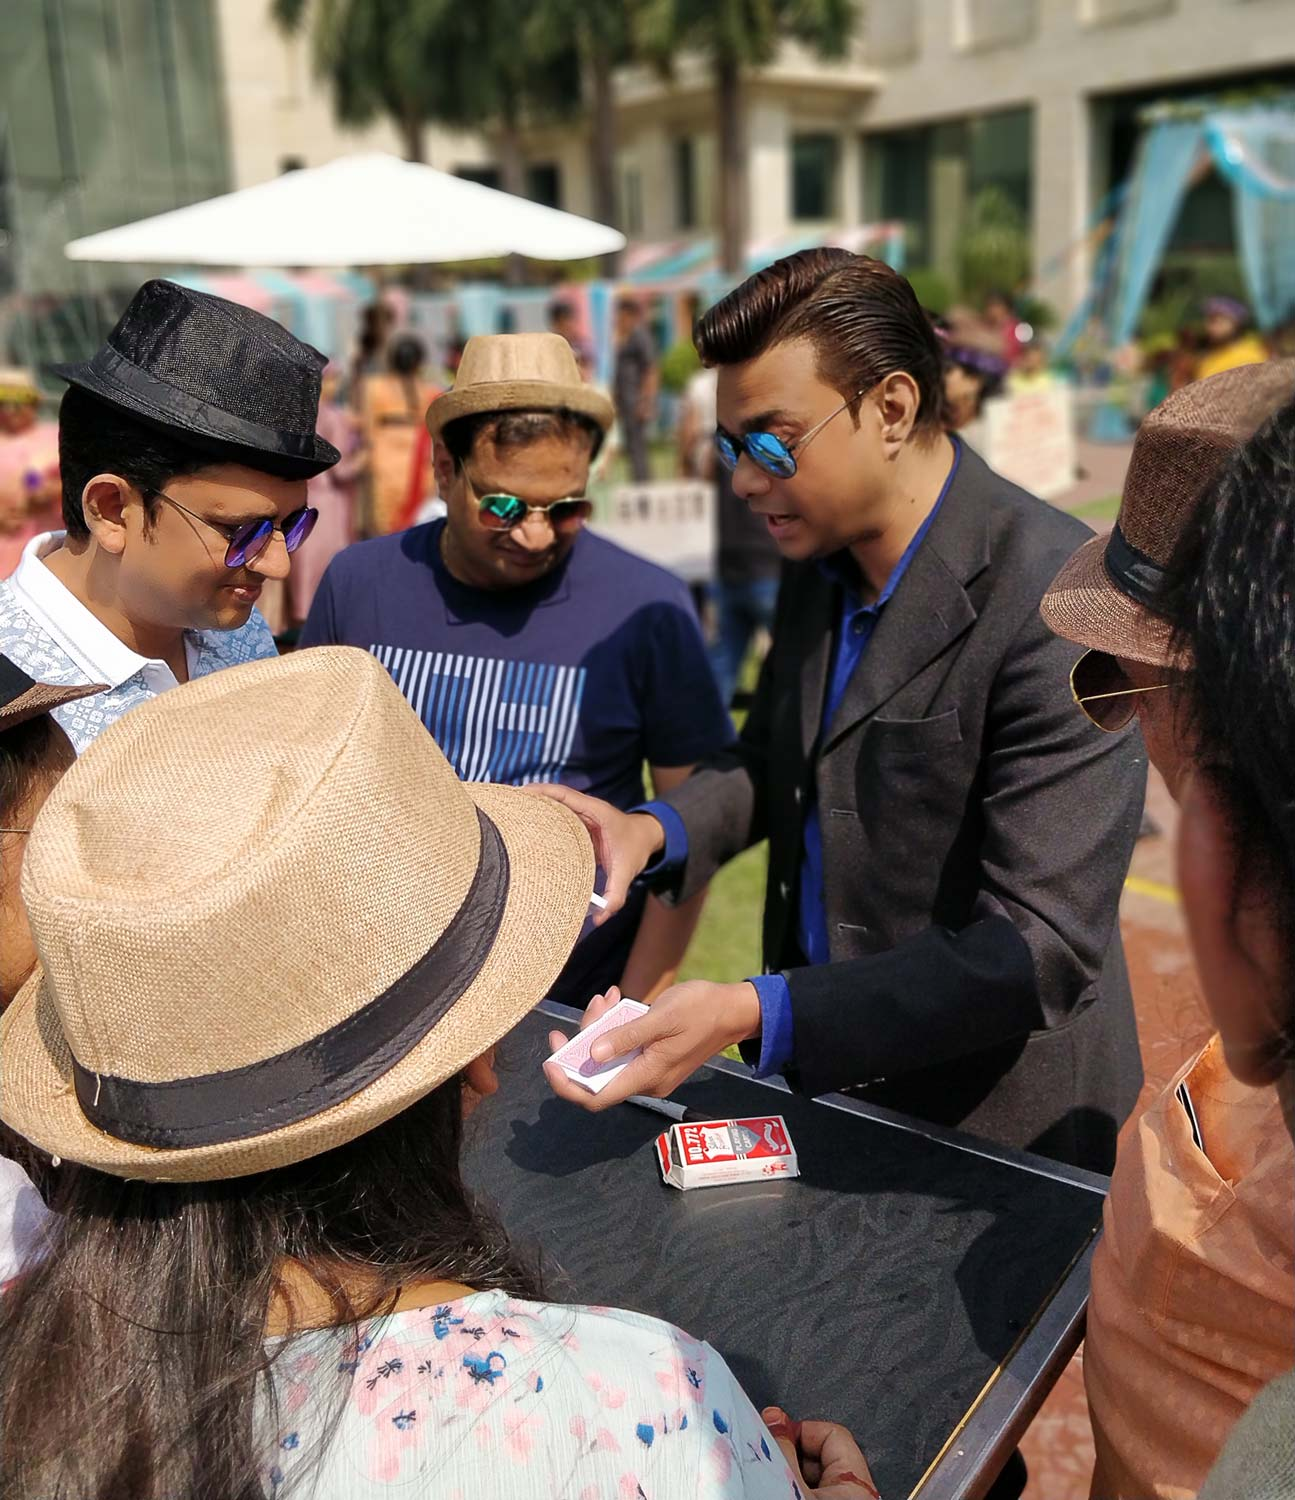 Magician Sourav Burman performing close up intimate illusions at a private event